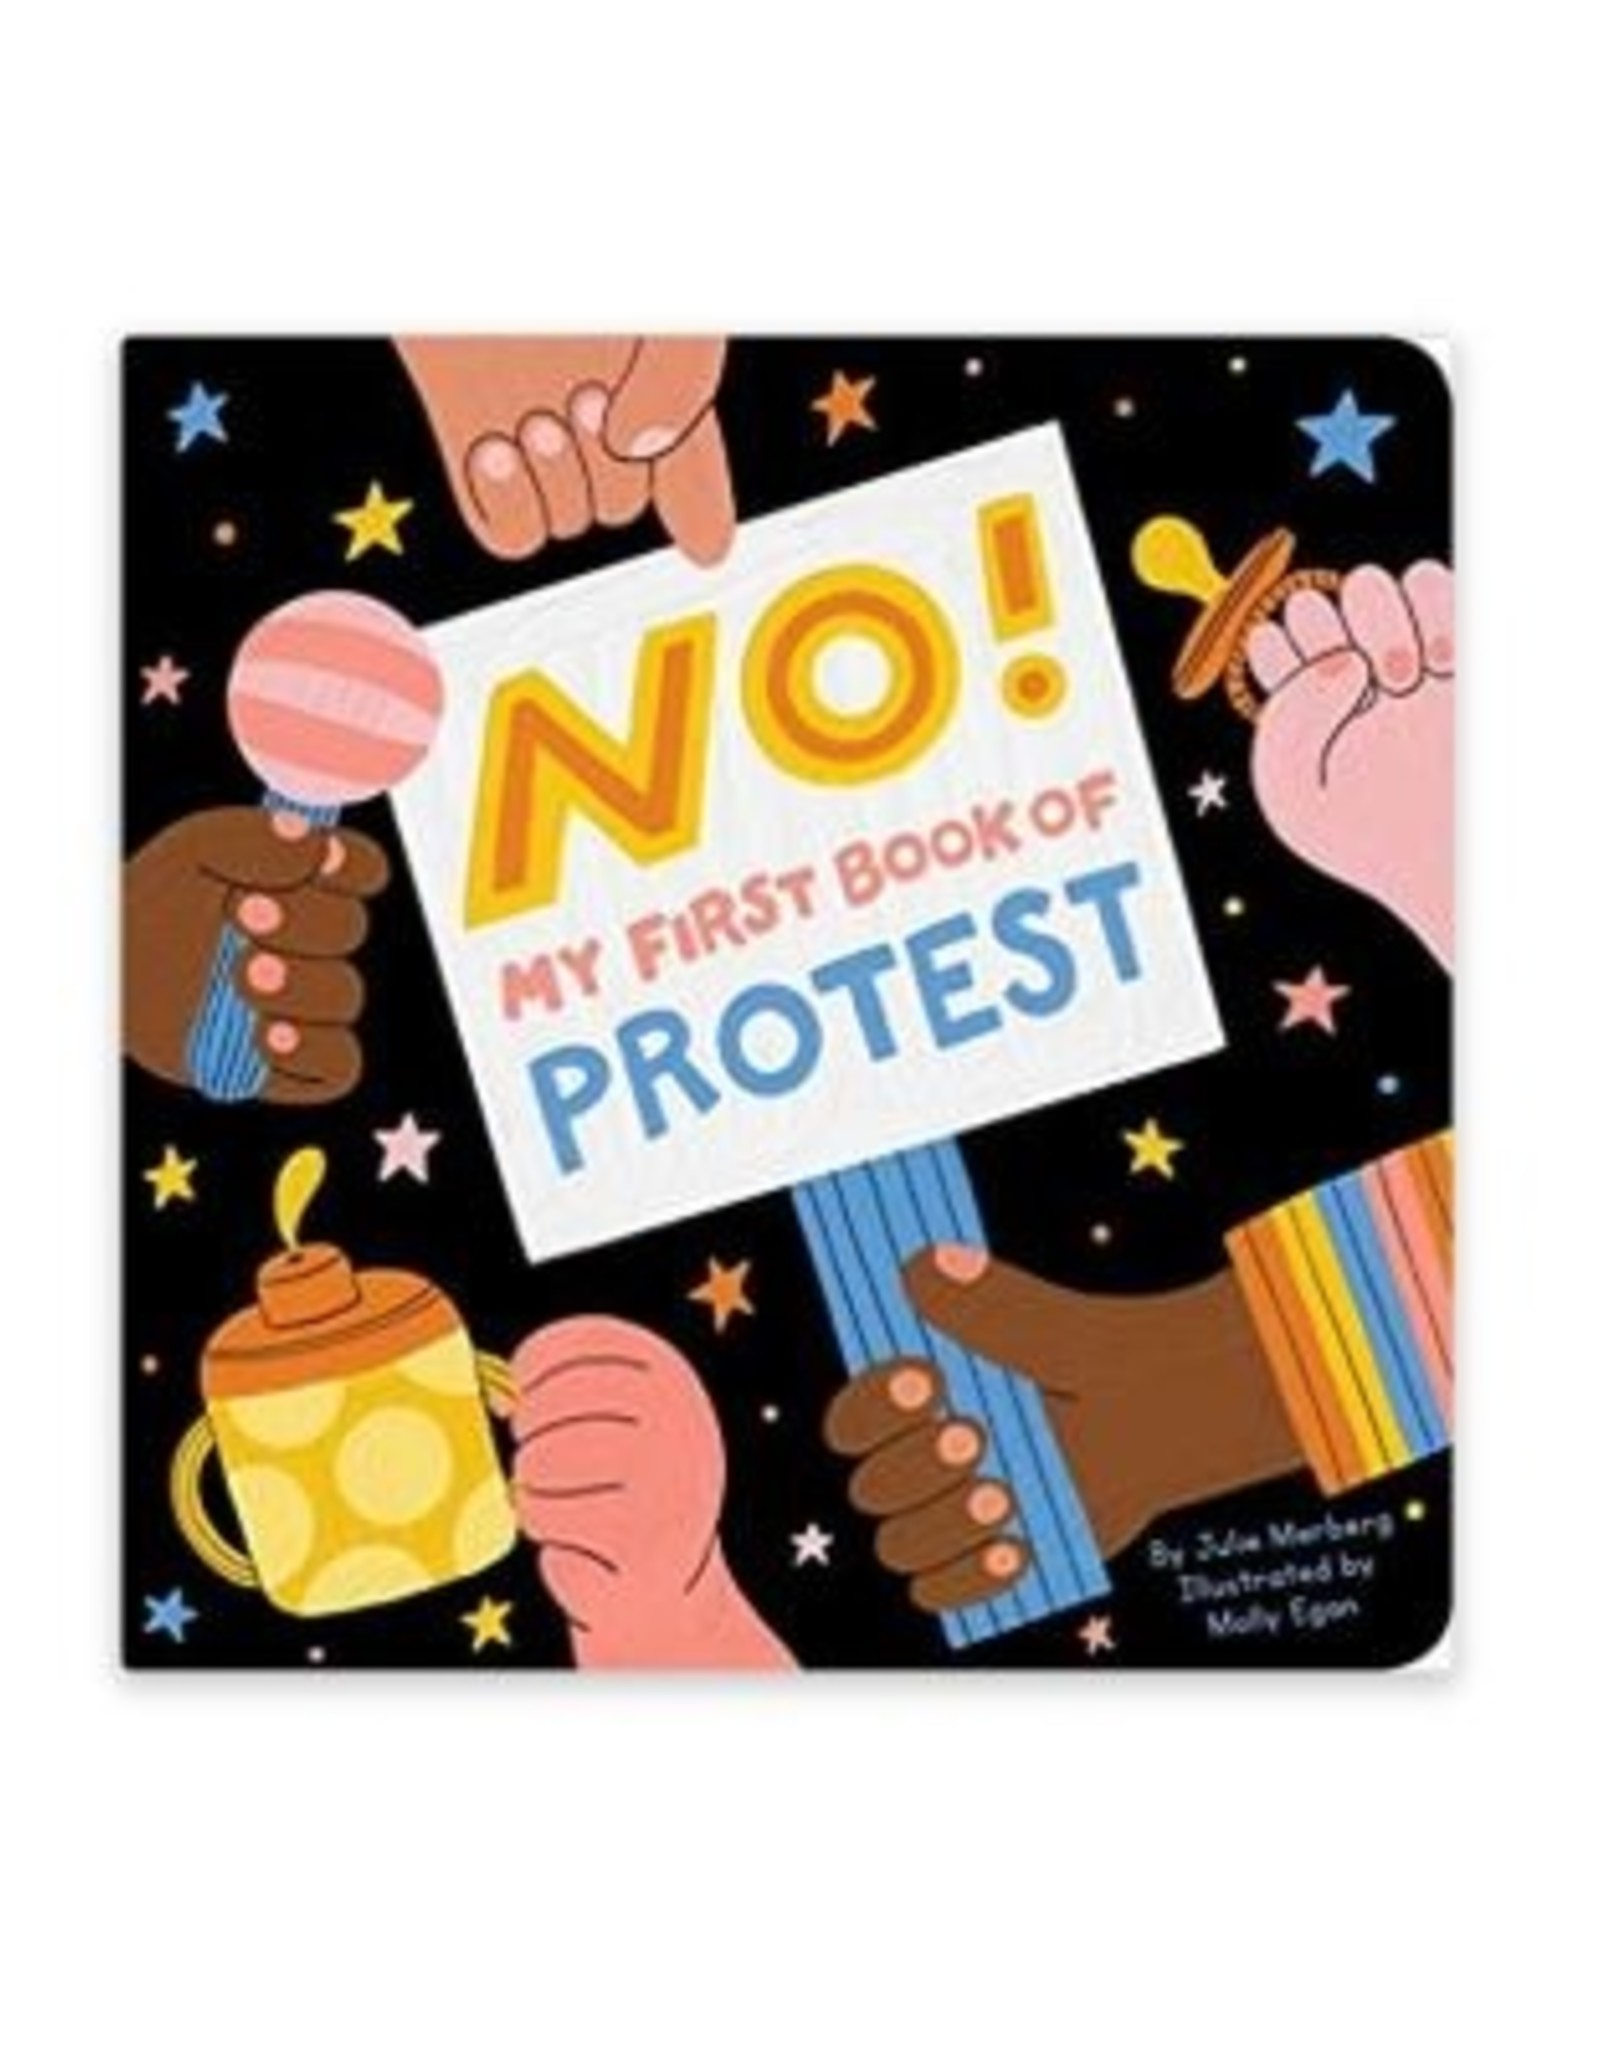 My first protest book